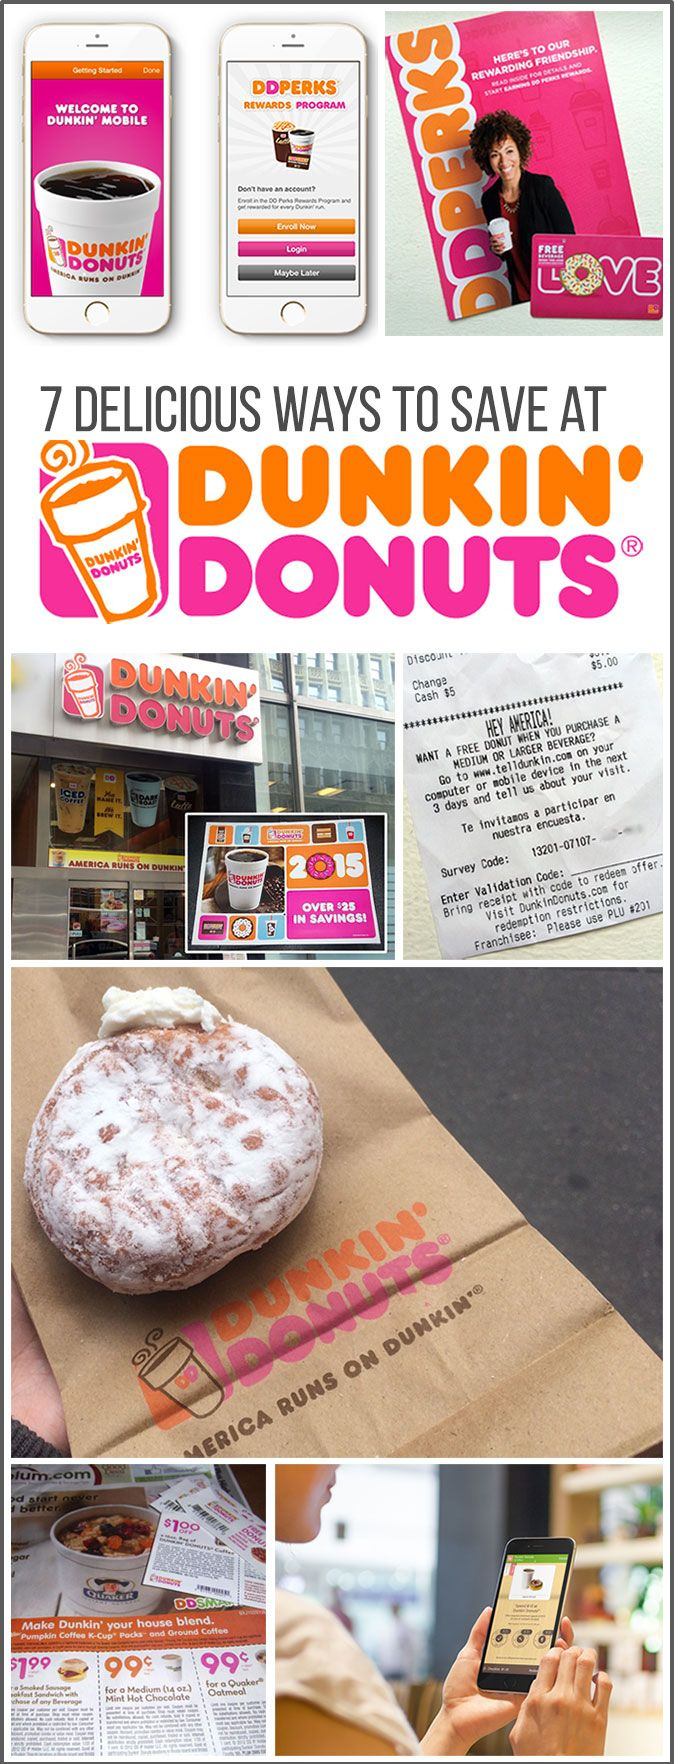 7 Delicious Ways to Save at Dunkin' Donuts